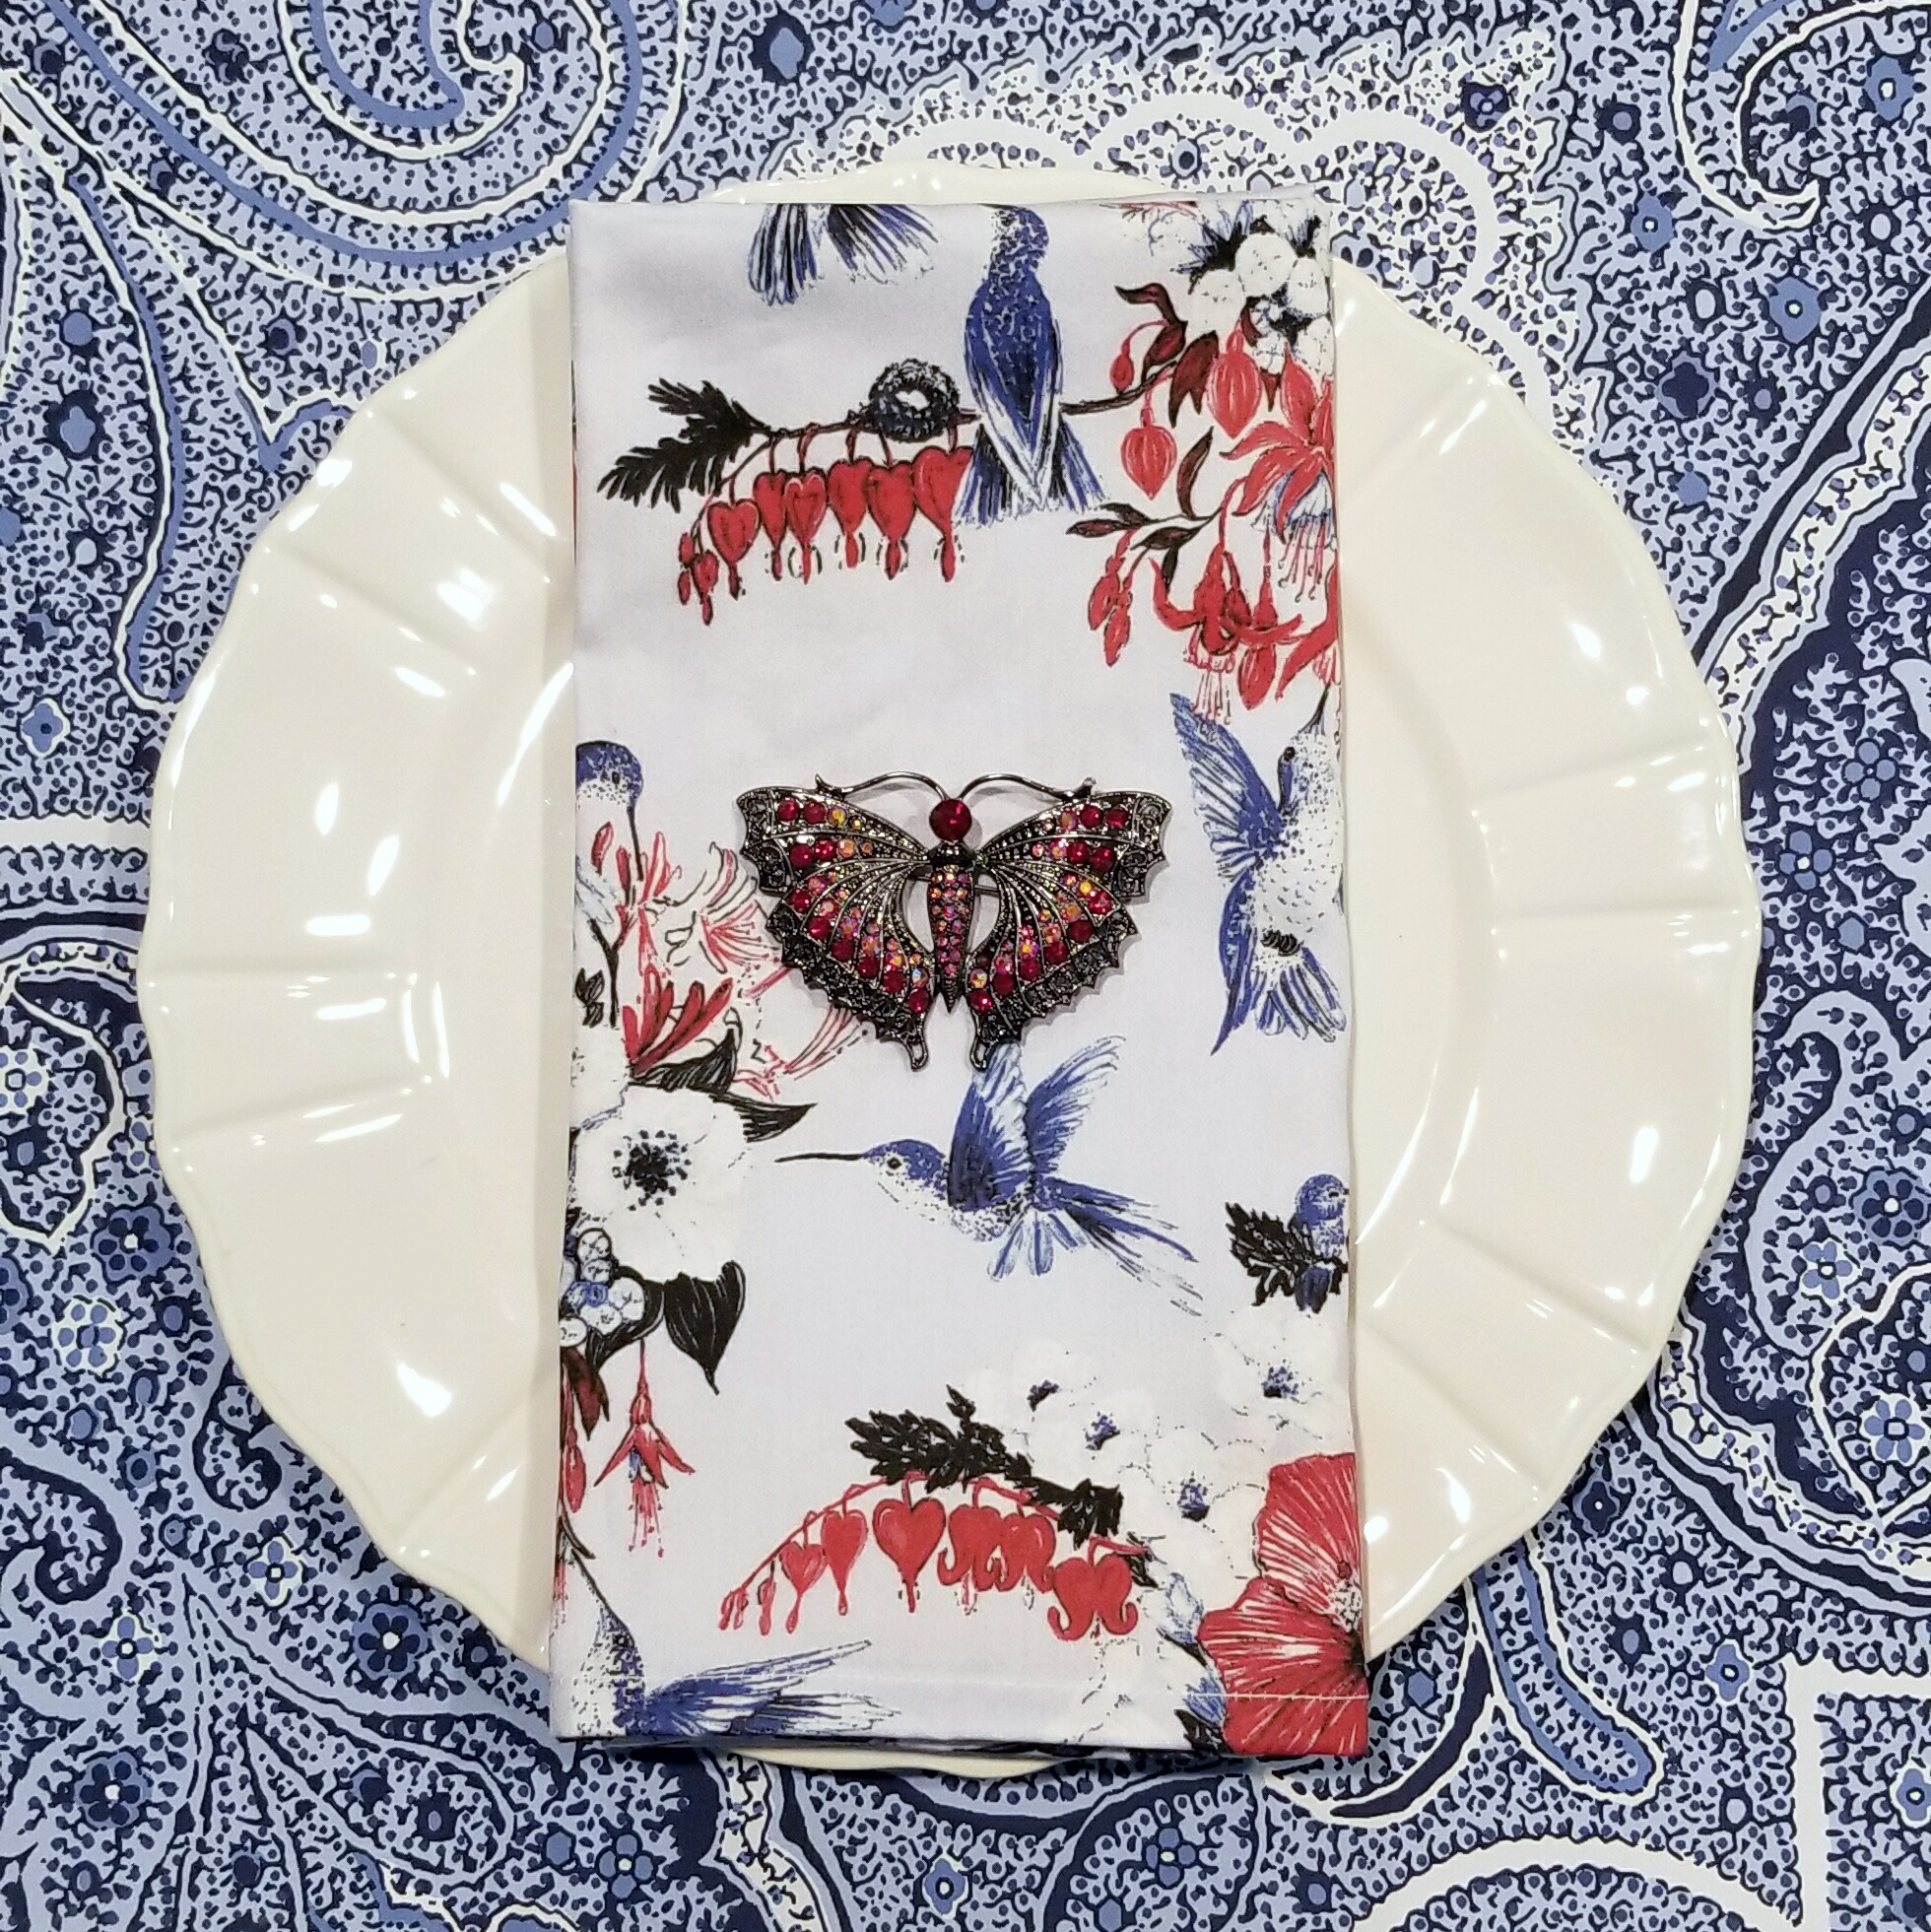 White plate with printed table napkin